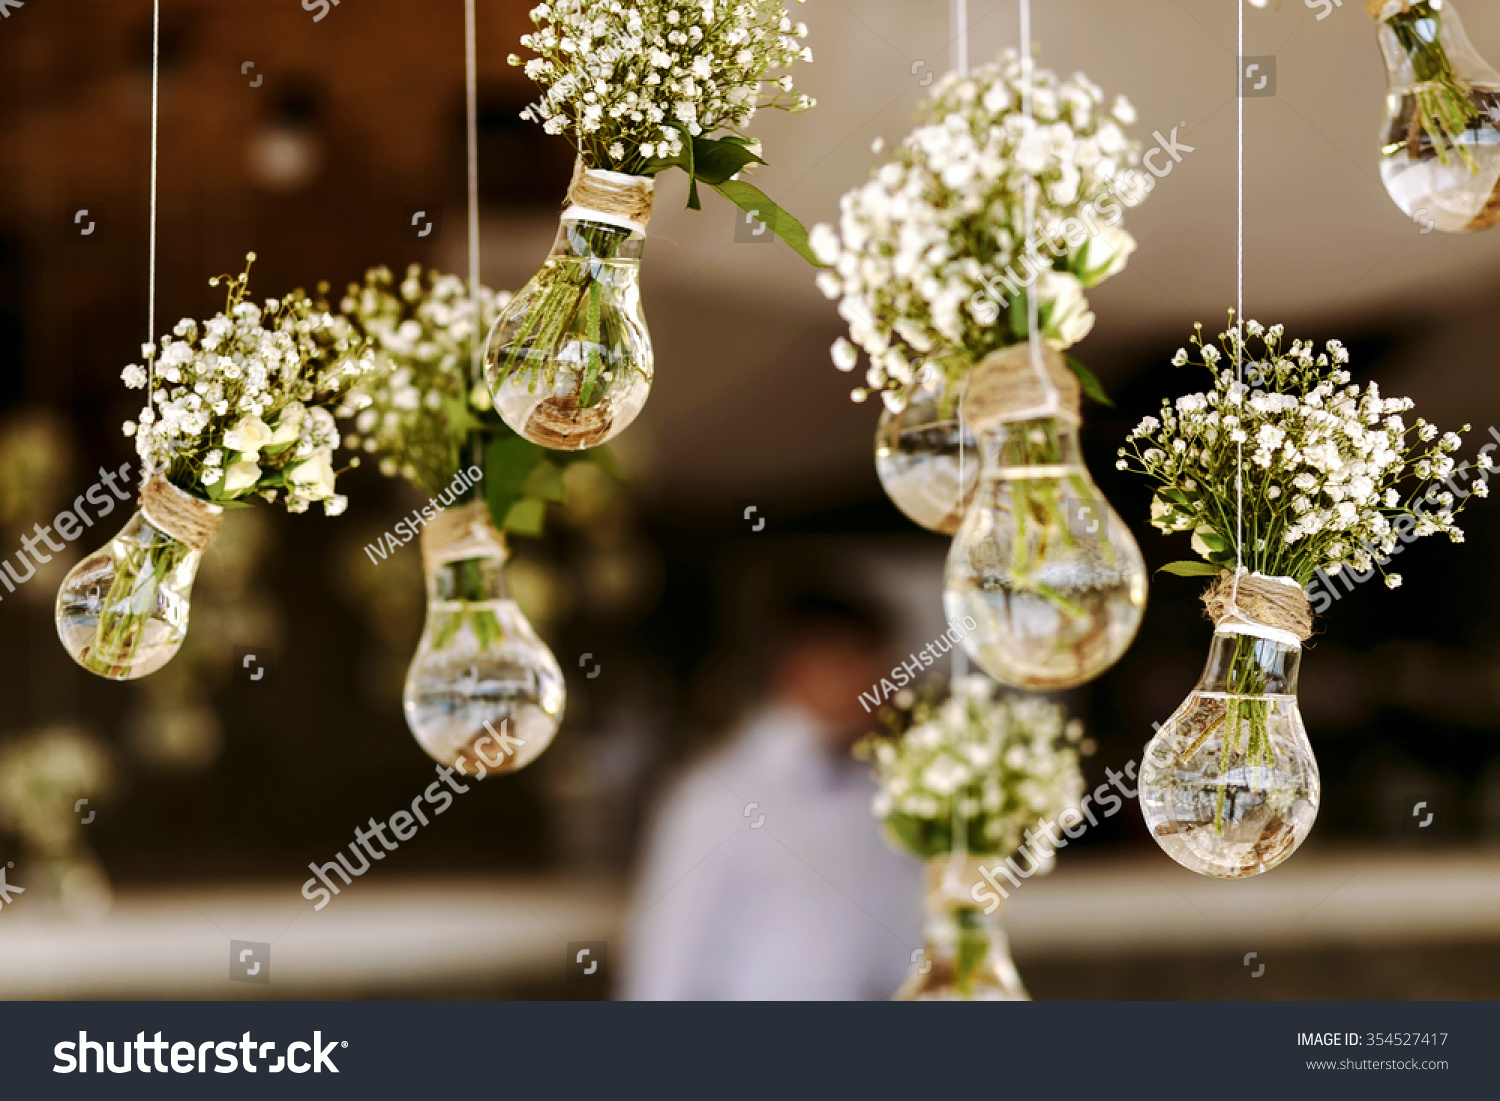 Original Wedding Floral Decoration In The Form Of Mini